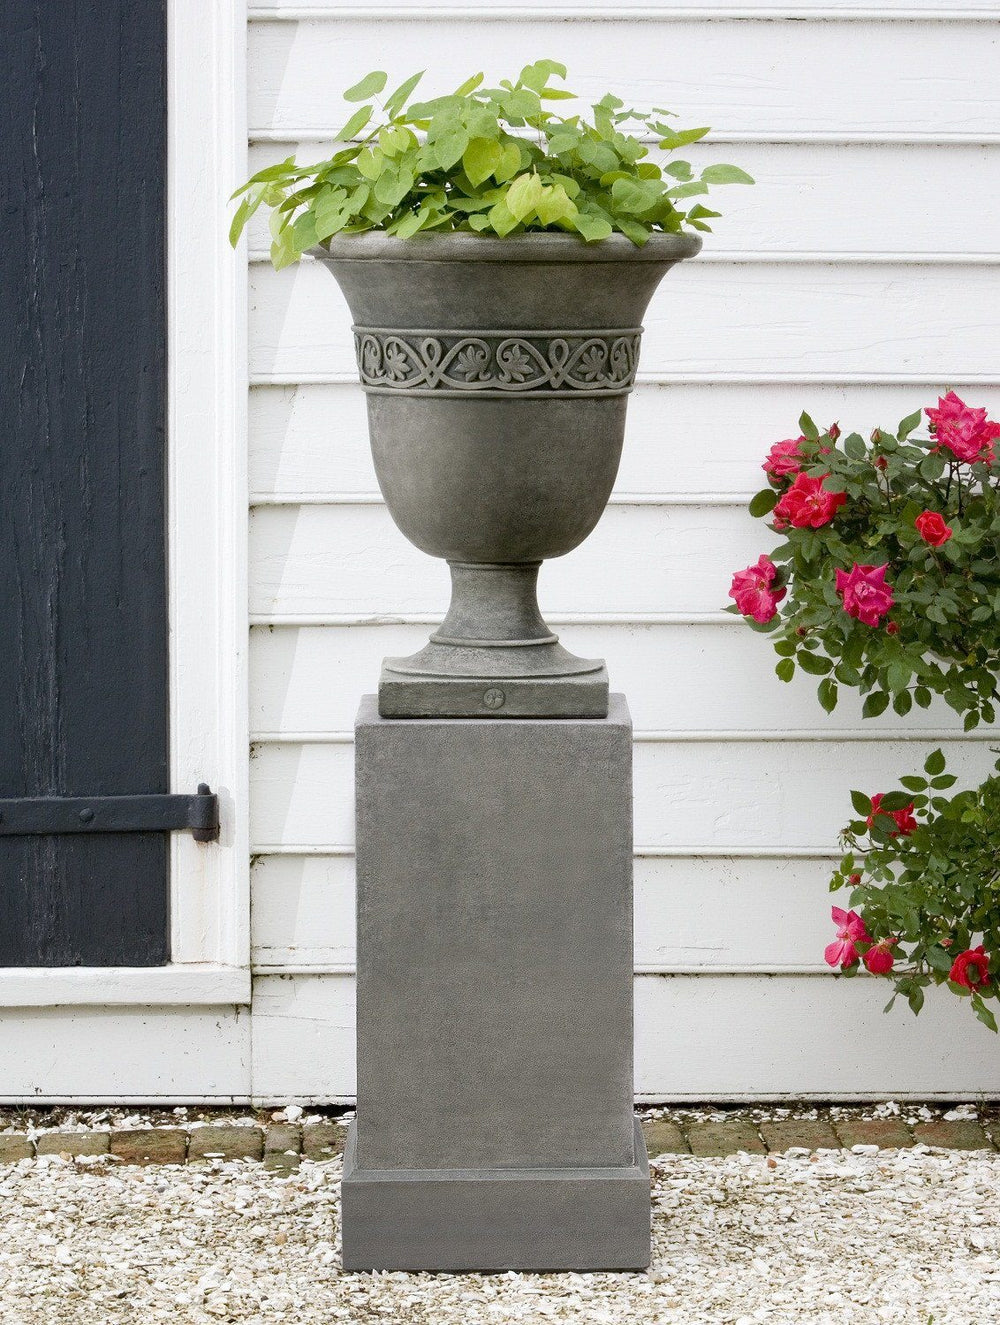 Campania International Cast Stone Wburg Strapwork Leaf Urn w/ Classic Tall Pedestal Urn/Planter Campania International